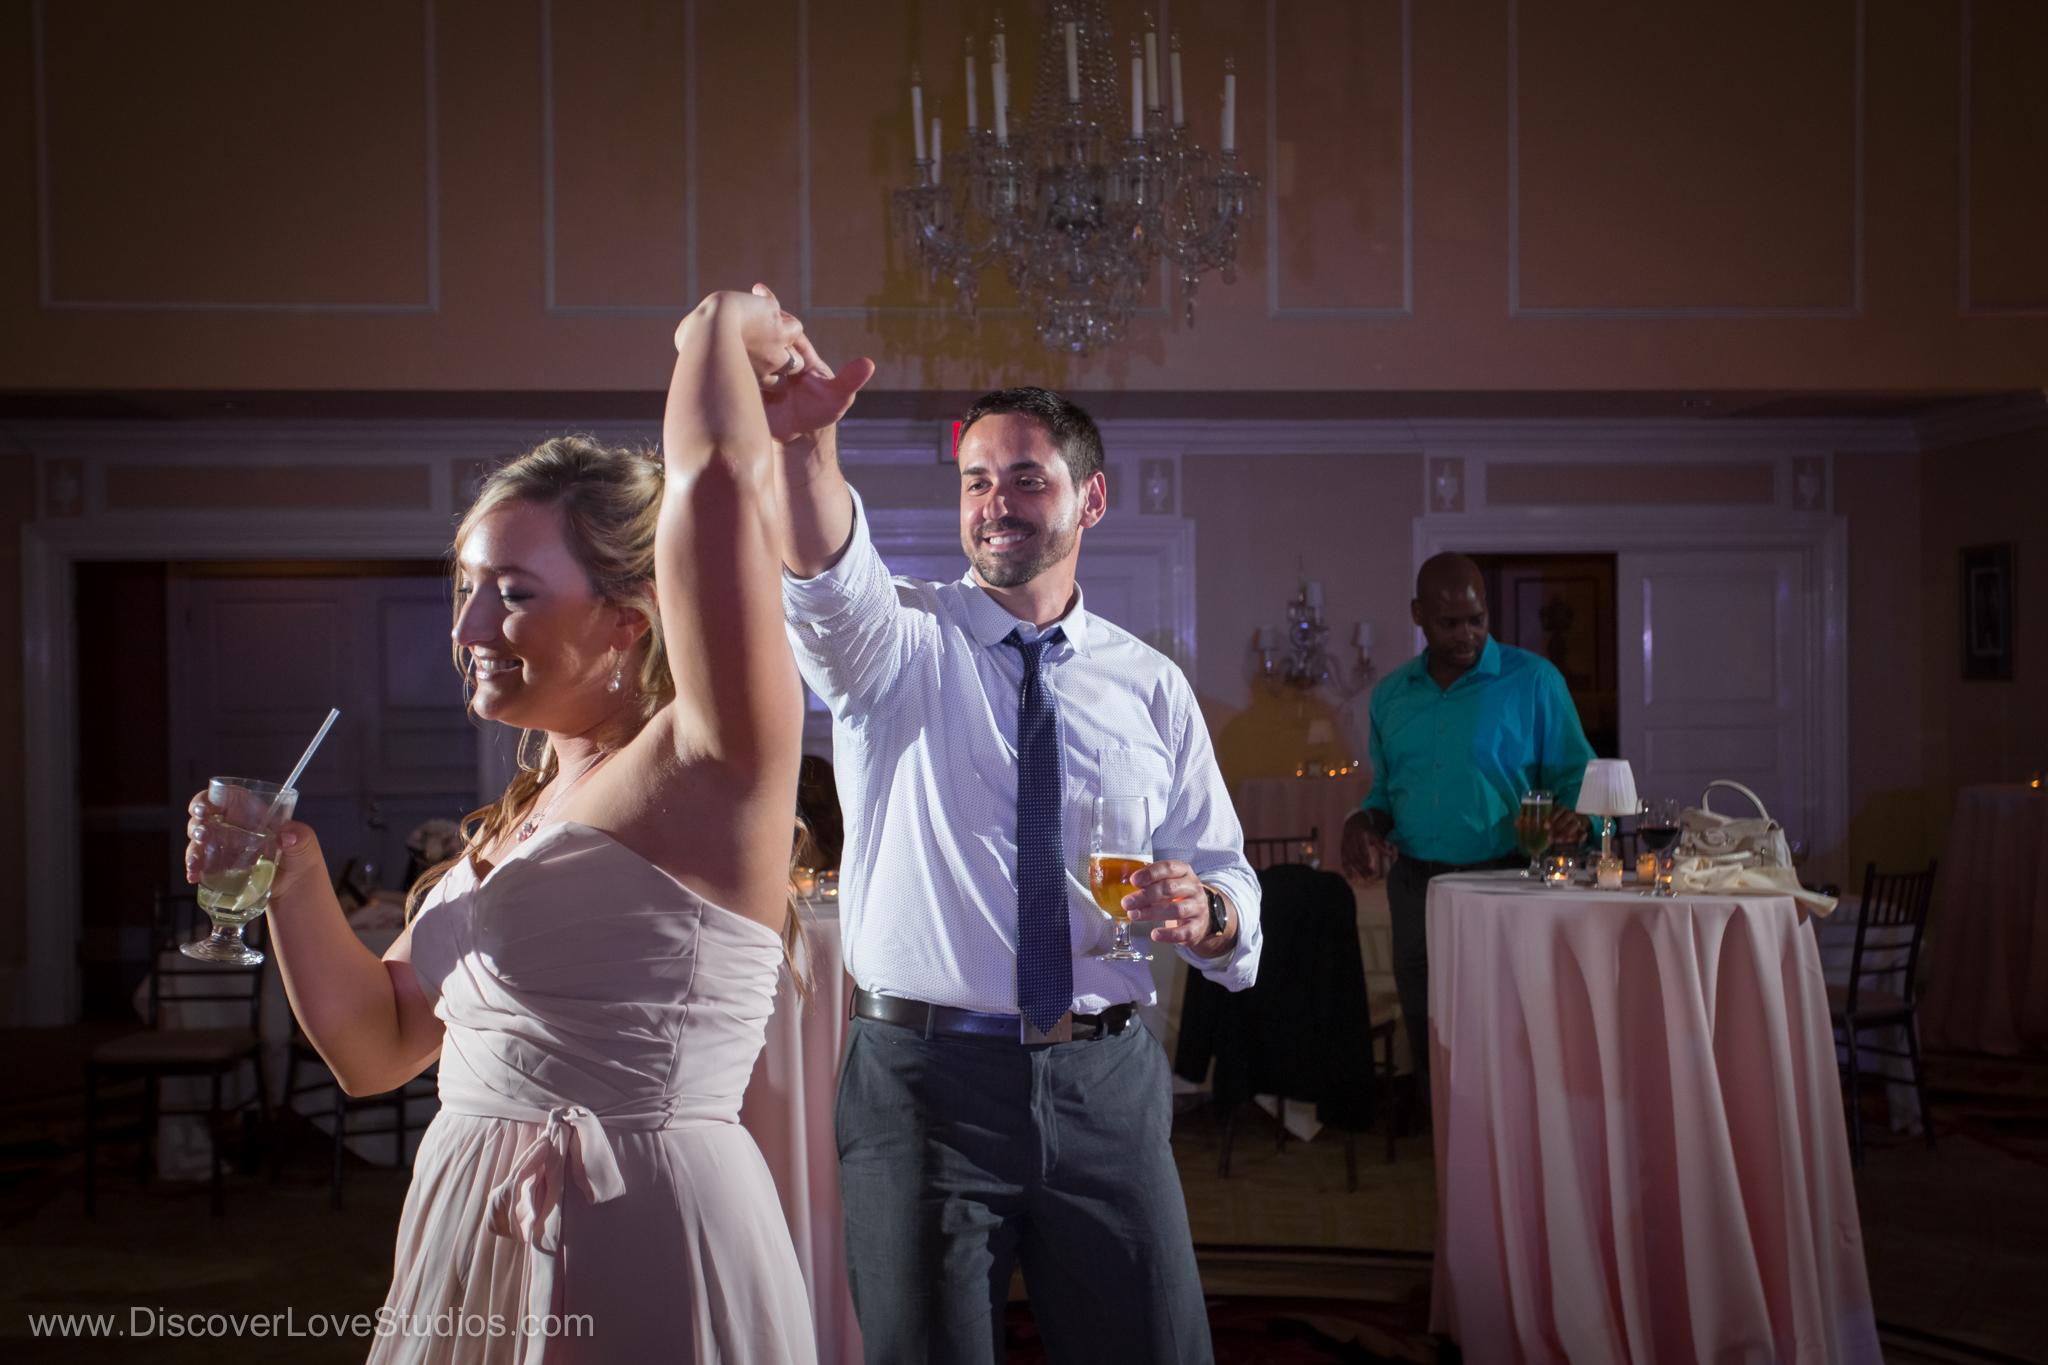 Dancing at a wedding at the Charlotte City Club.